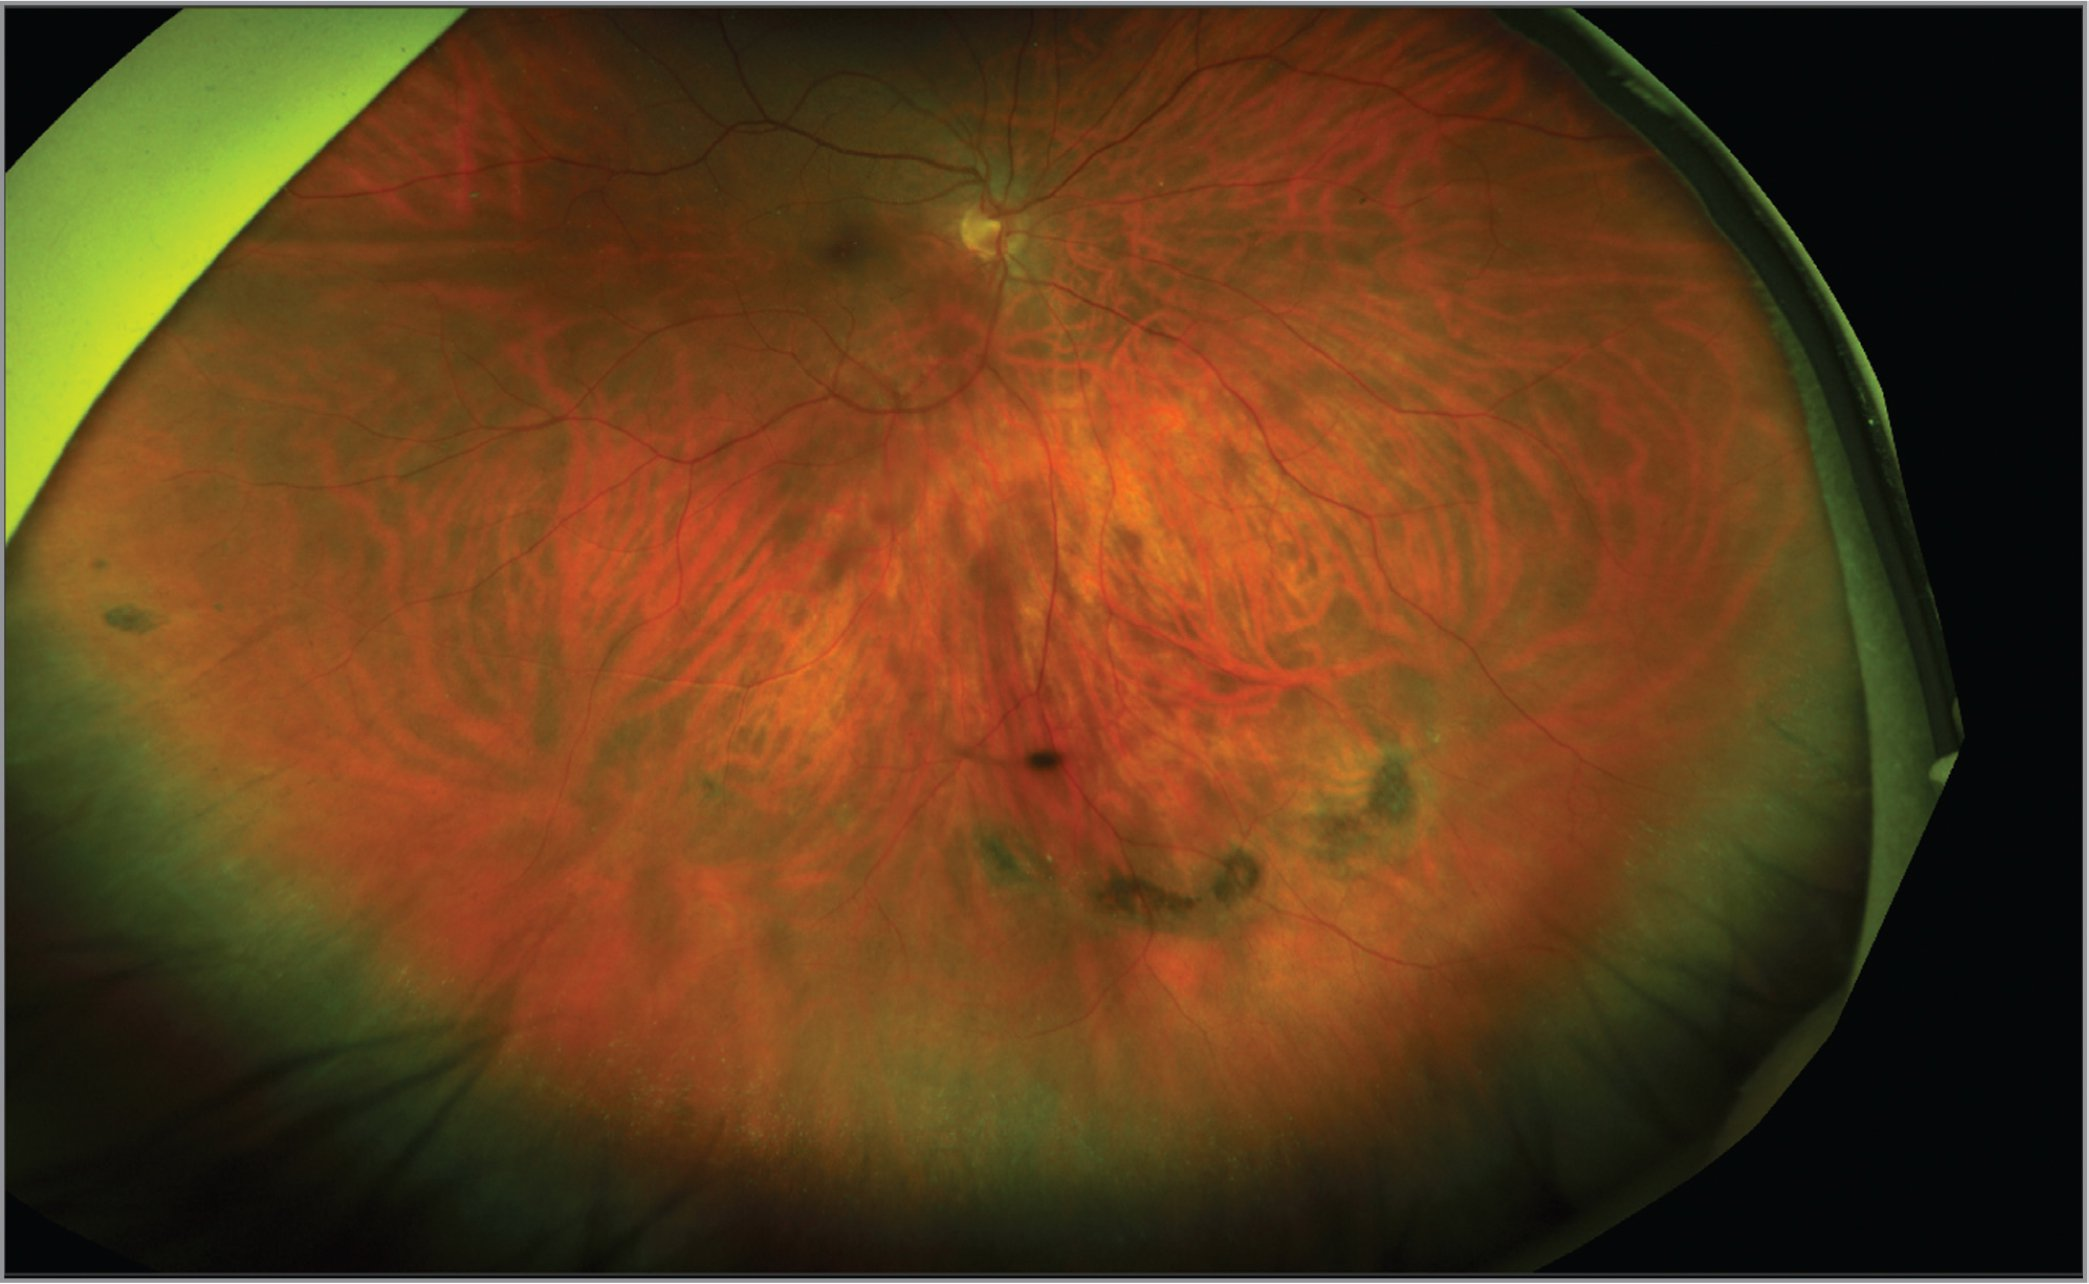 Pseudocolor image from the right eye of a patient affected by lattice degeneration located in the inferior peripheral retina.